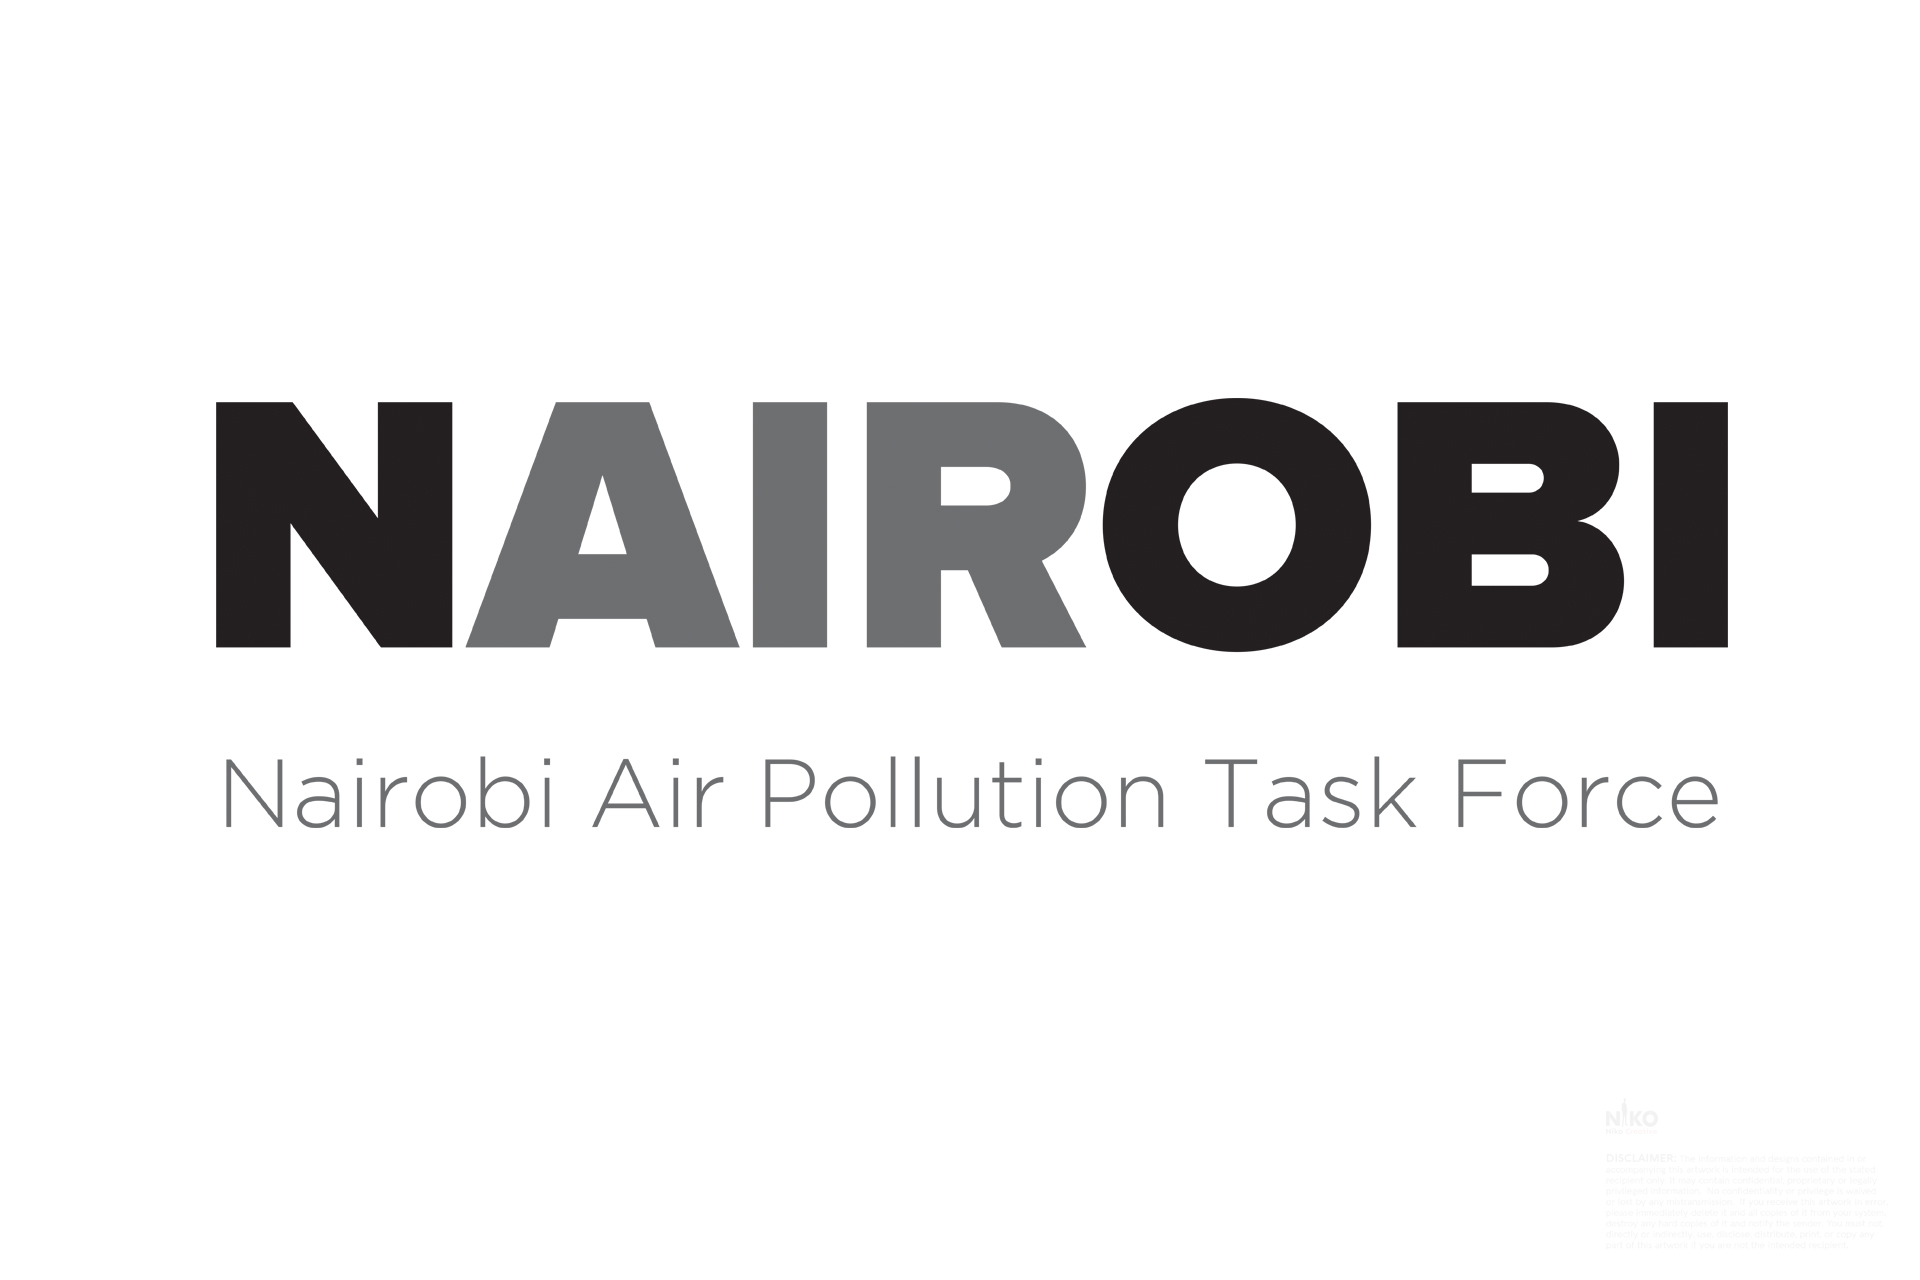 Day 19 Nairobi Air Pollution Task Force